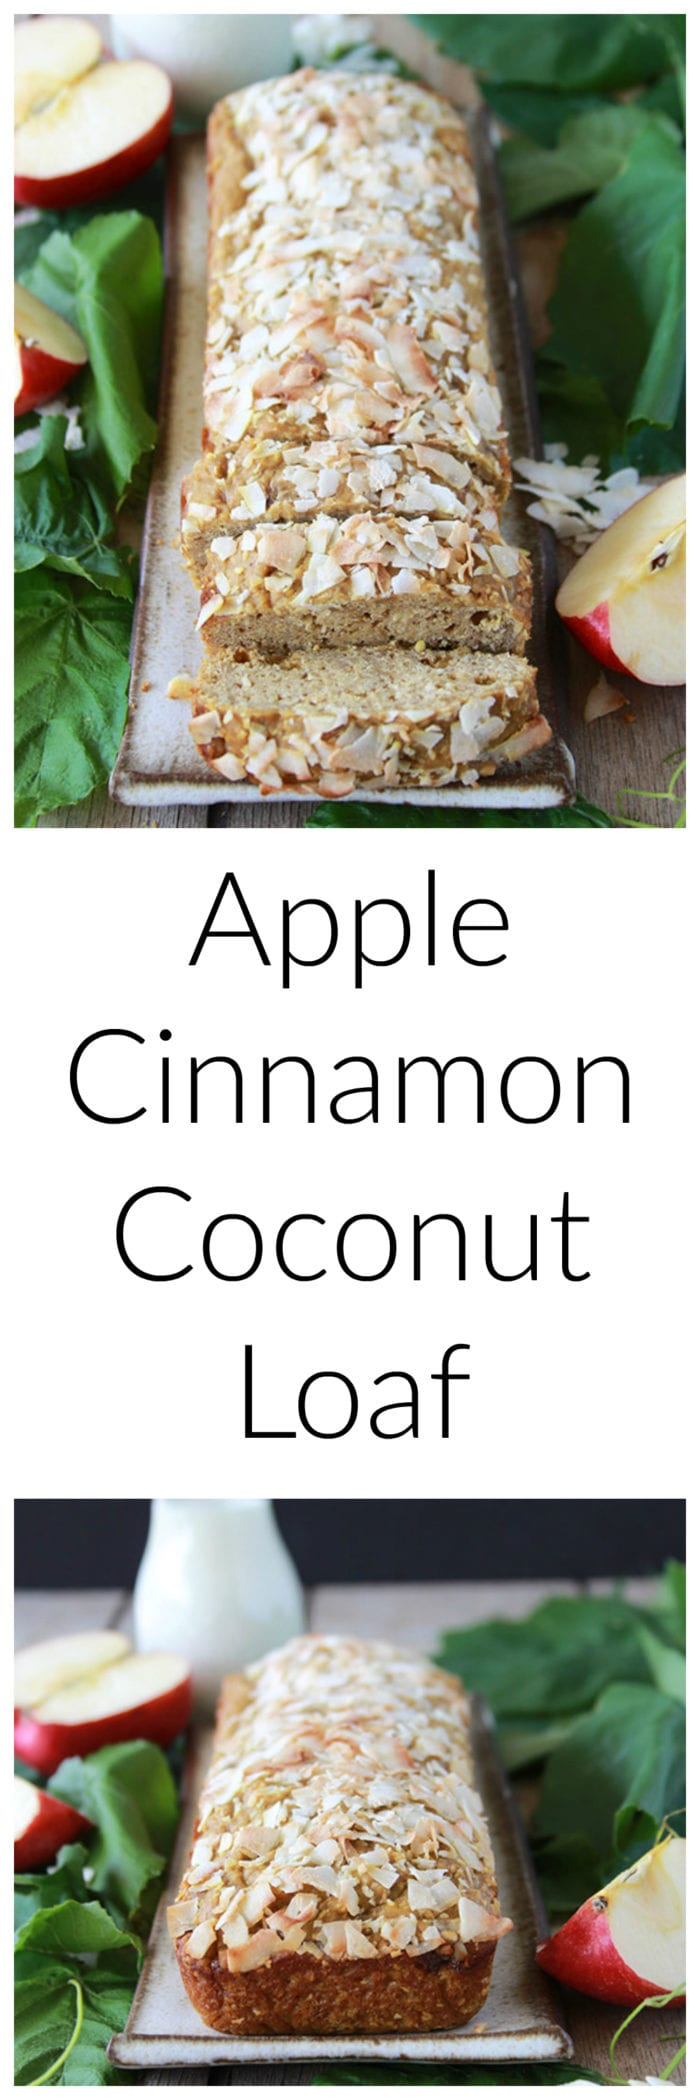 Apple Cinnamon Coconut Loaf is going to make your autumn baking even more AHhmazing!  www.cookingwithruthie.com